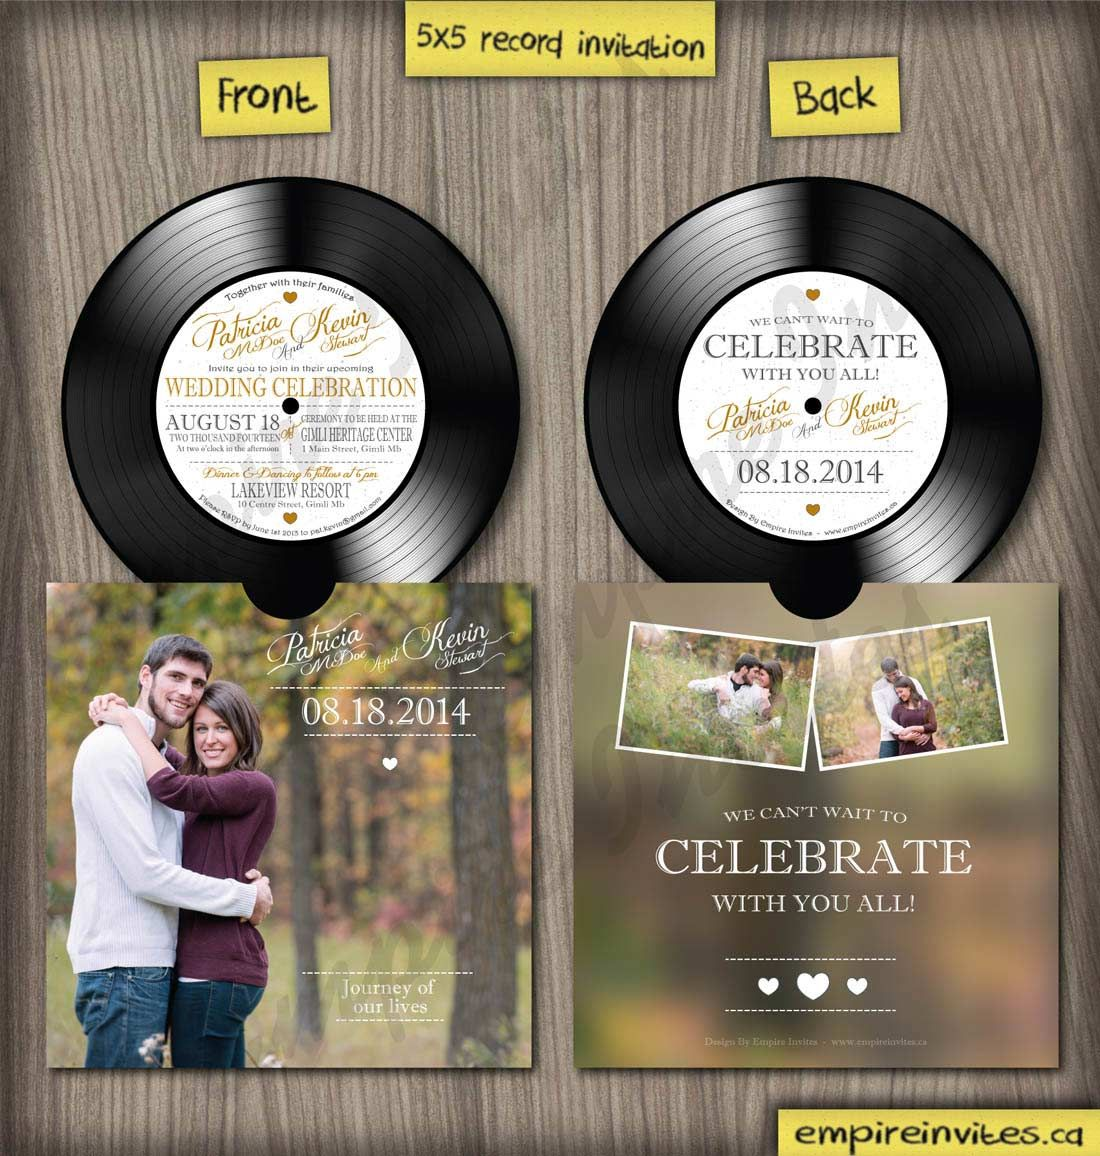 Custom vinyl record music wedding invitations From Winnipeg – Custom Wedding Invitations Canada